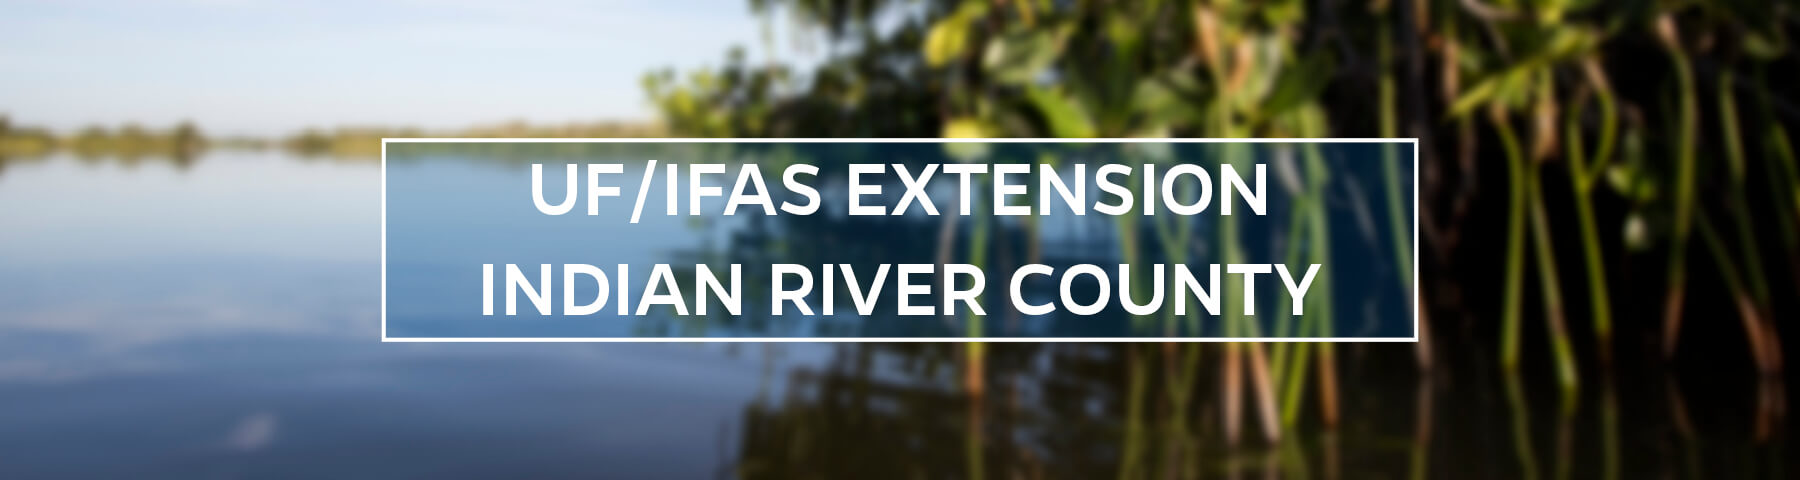 UF/IFAS Extension Indian River County